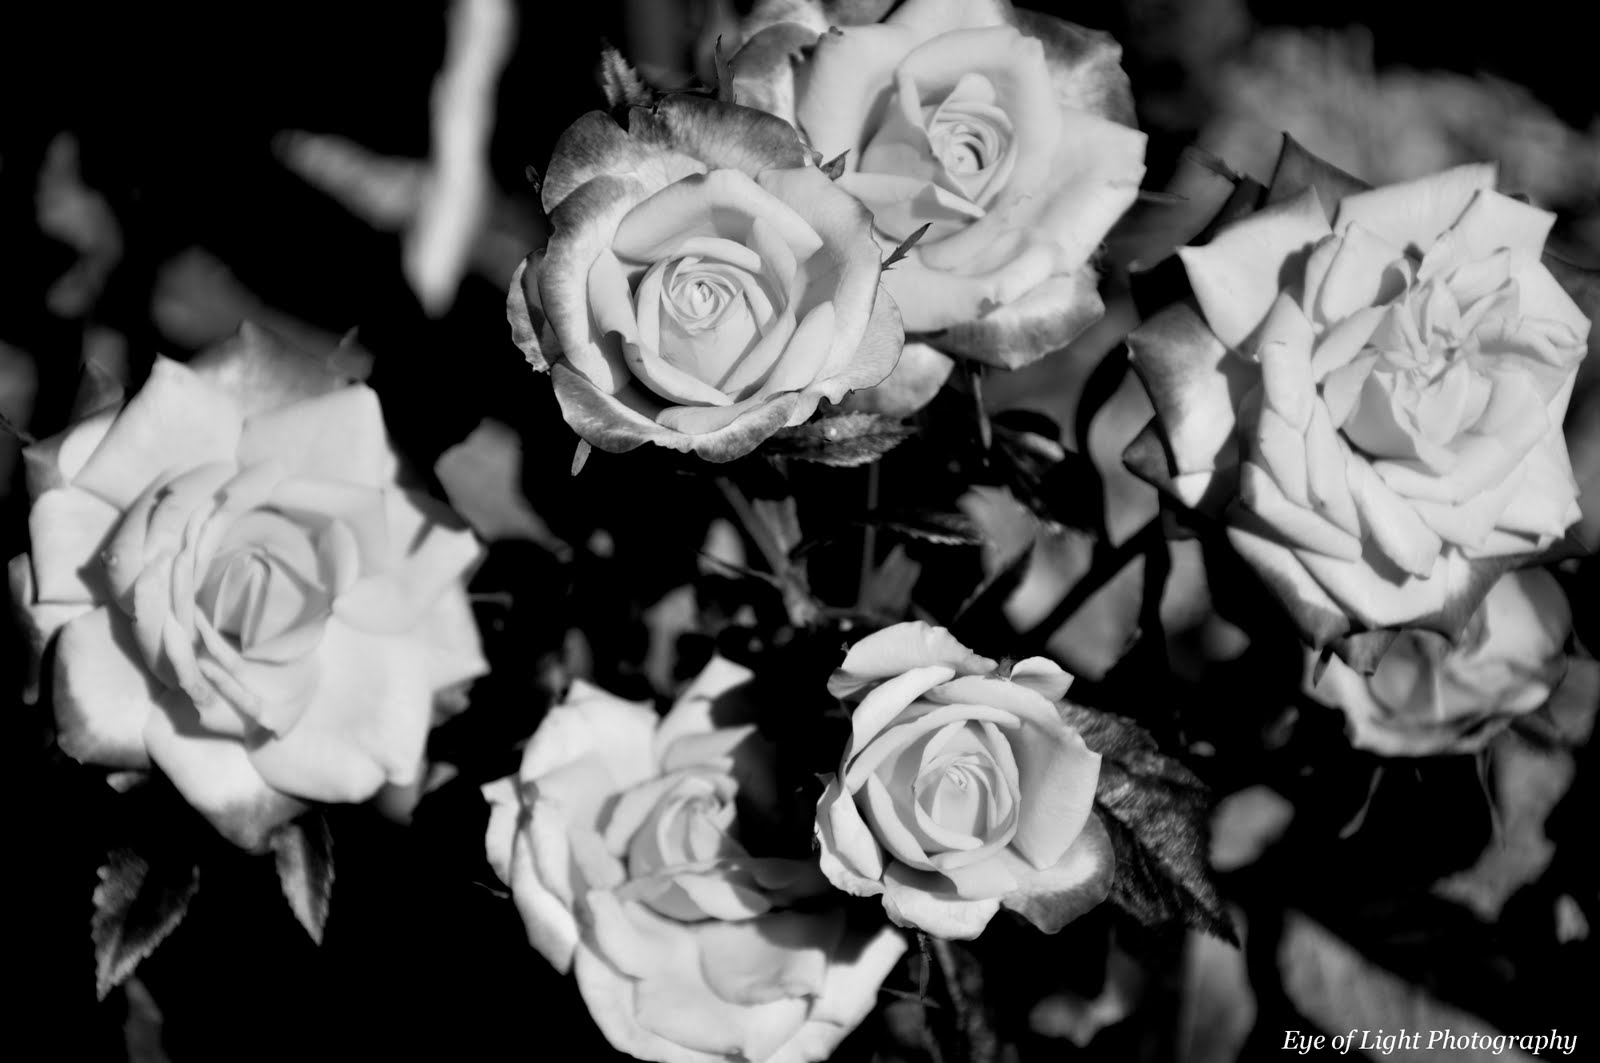 eye of light photography black and white roses